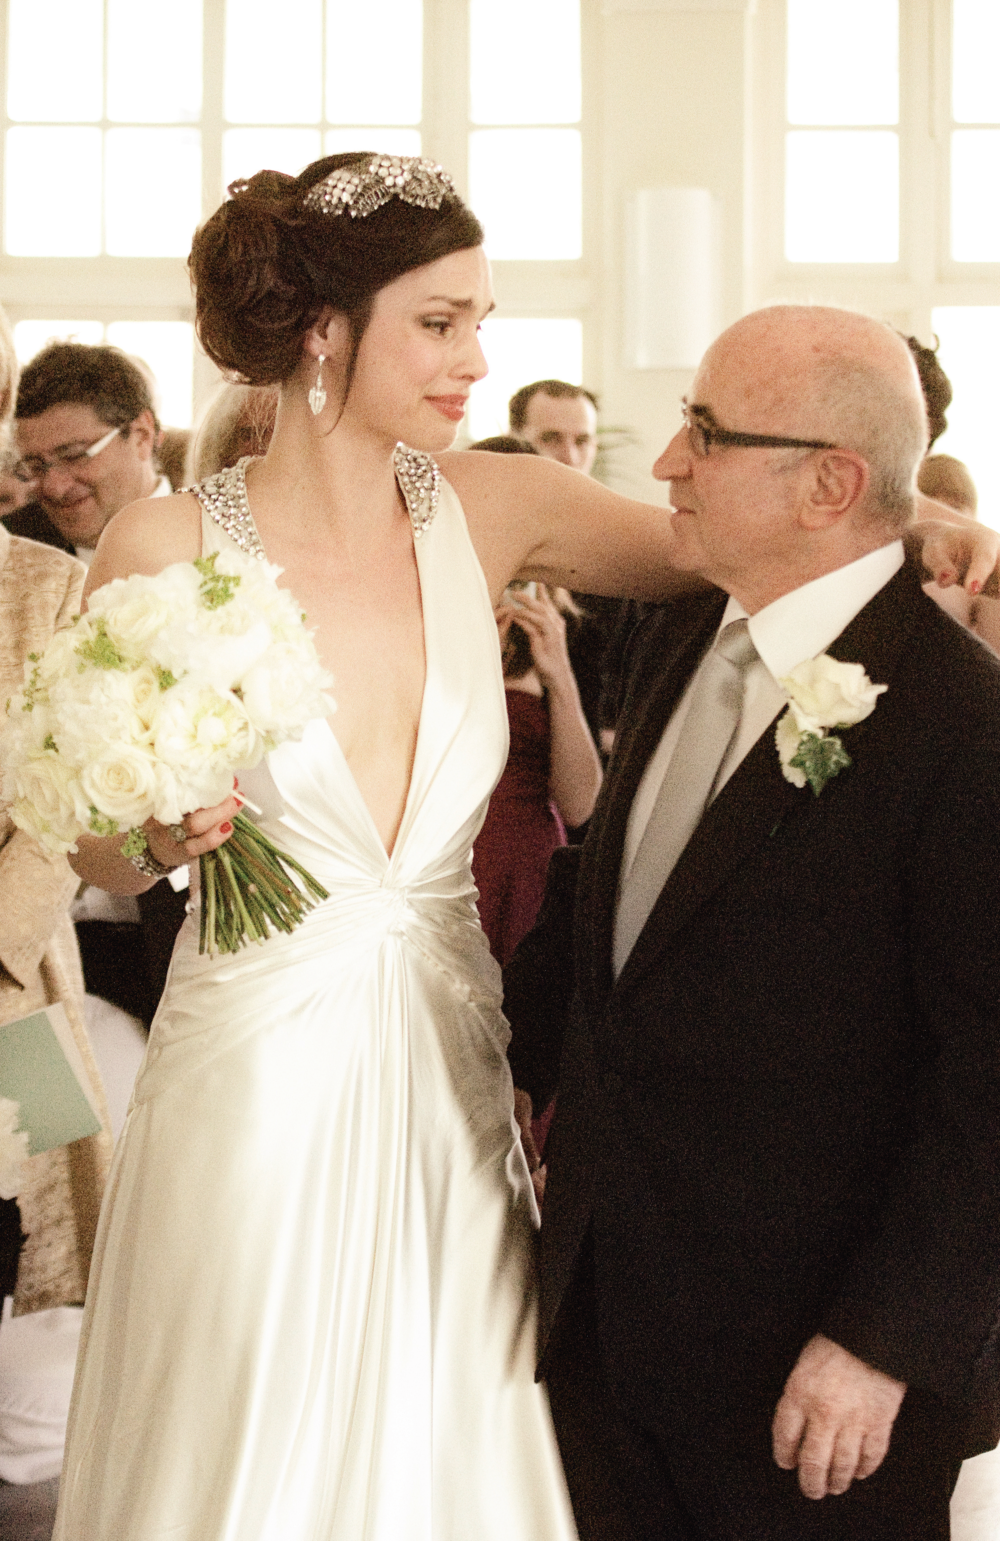 Rosa and her father on her wedding day